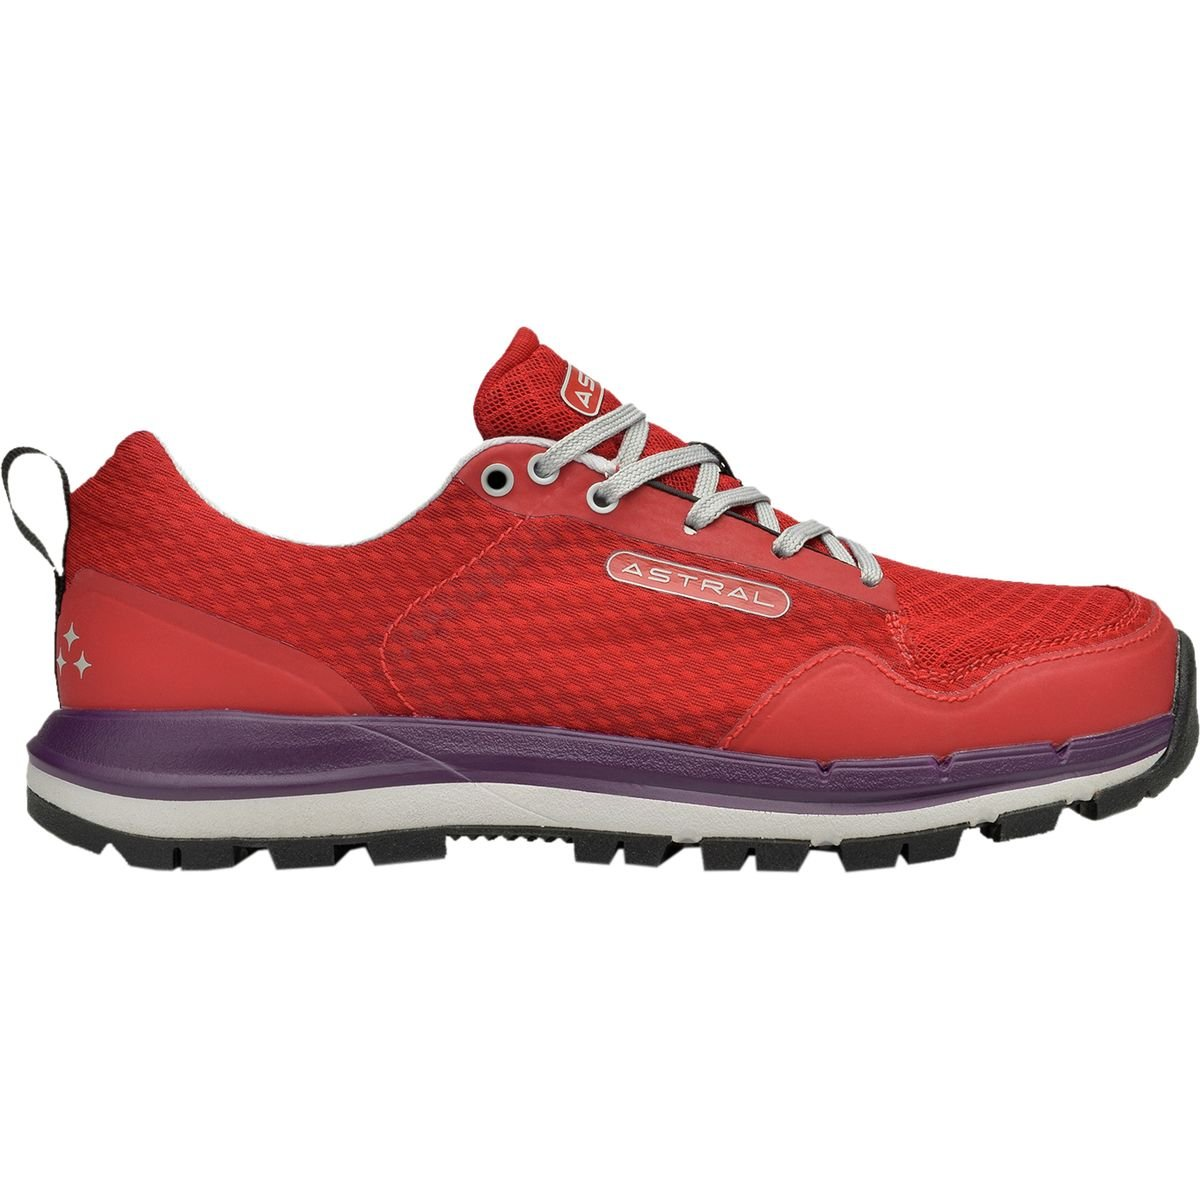 Astral Tr1 Mesh Water Shoe - Women's Rosa Red, 6.0 by Astral